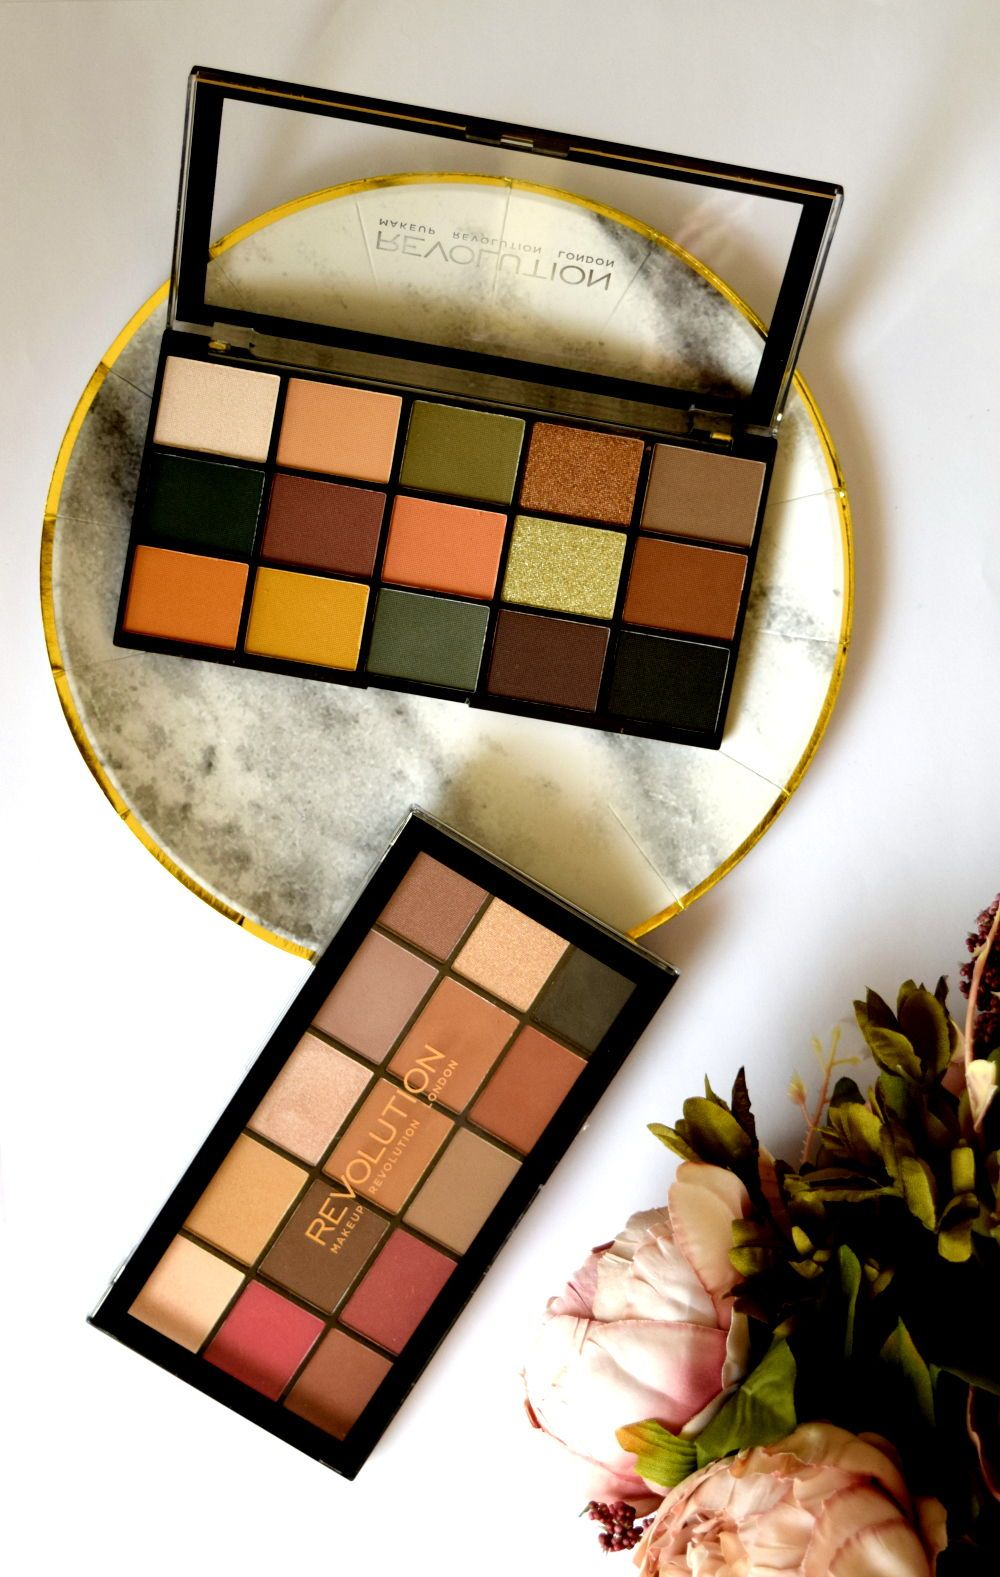 MAKEUP REVOLUTION Reloaded Palettes Swatches + Review